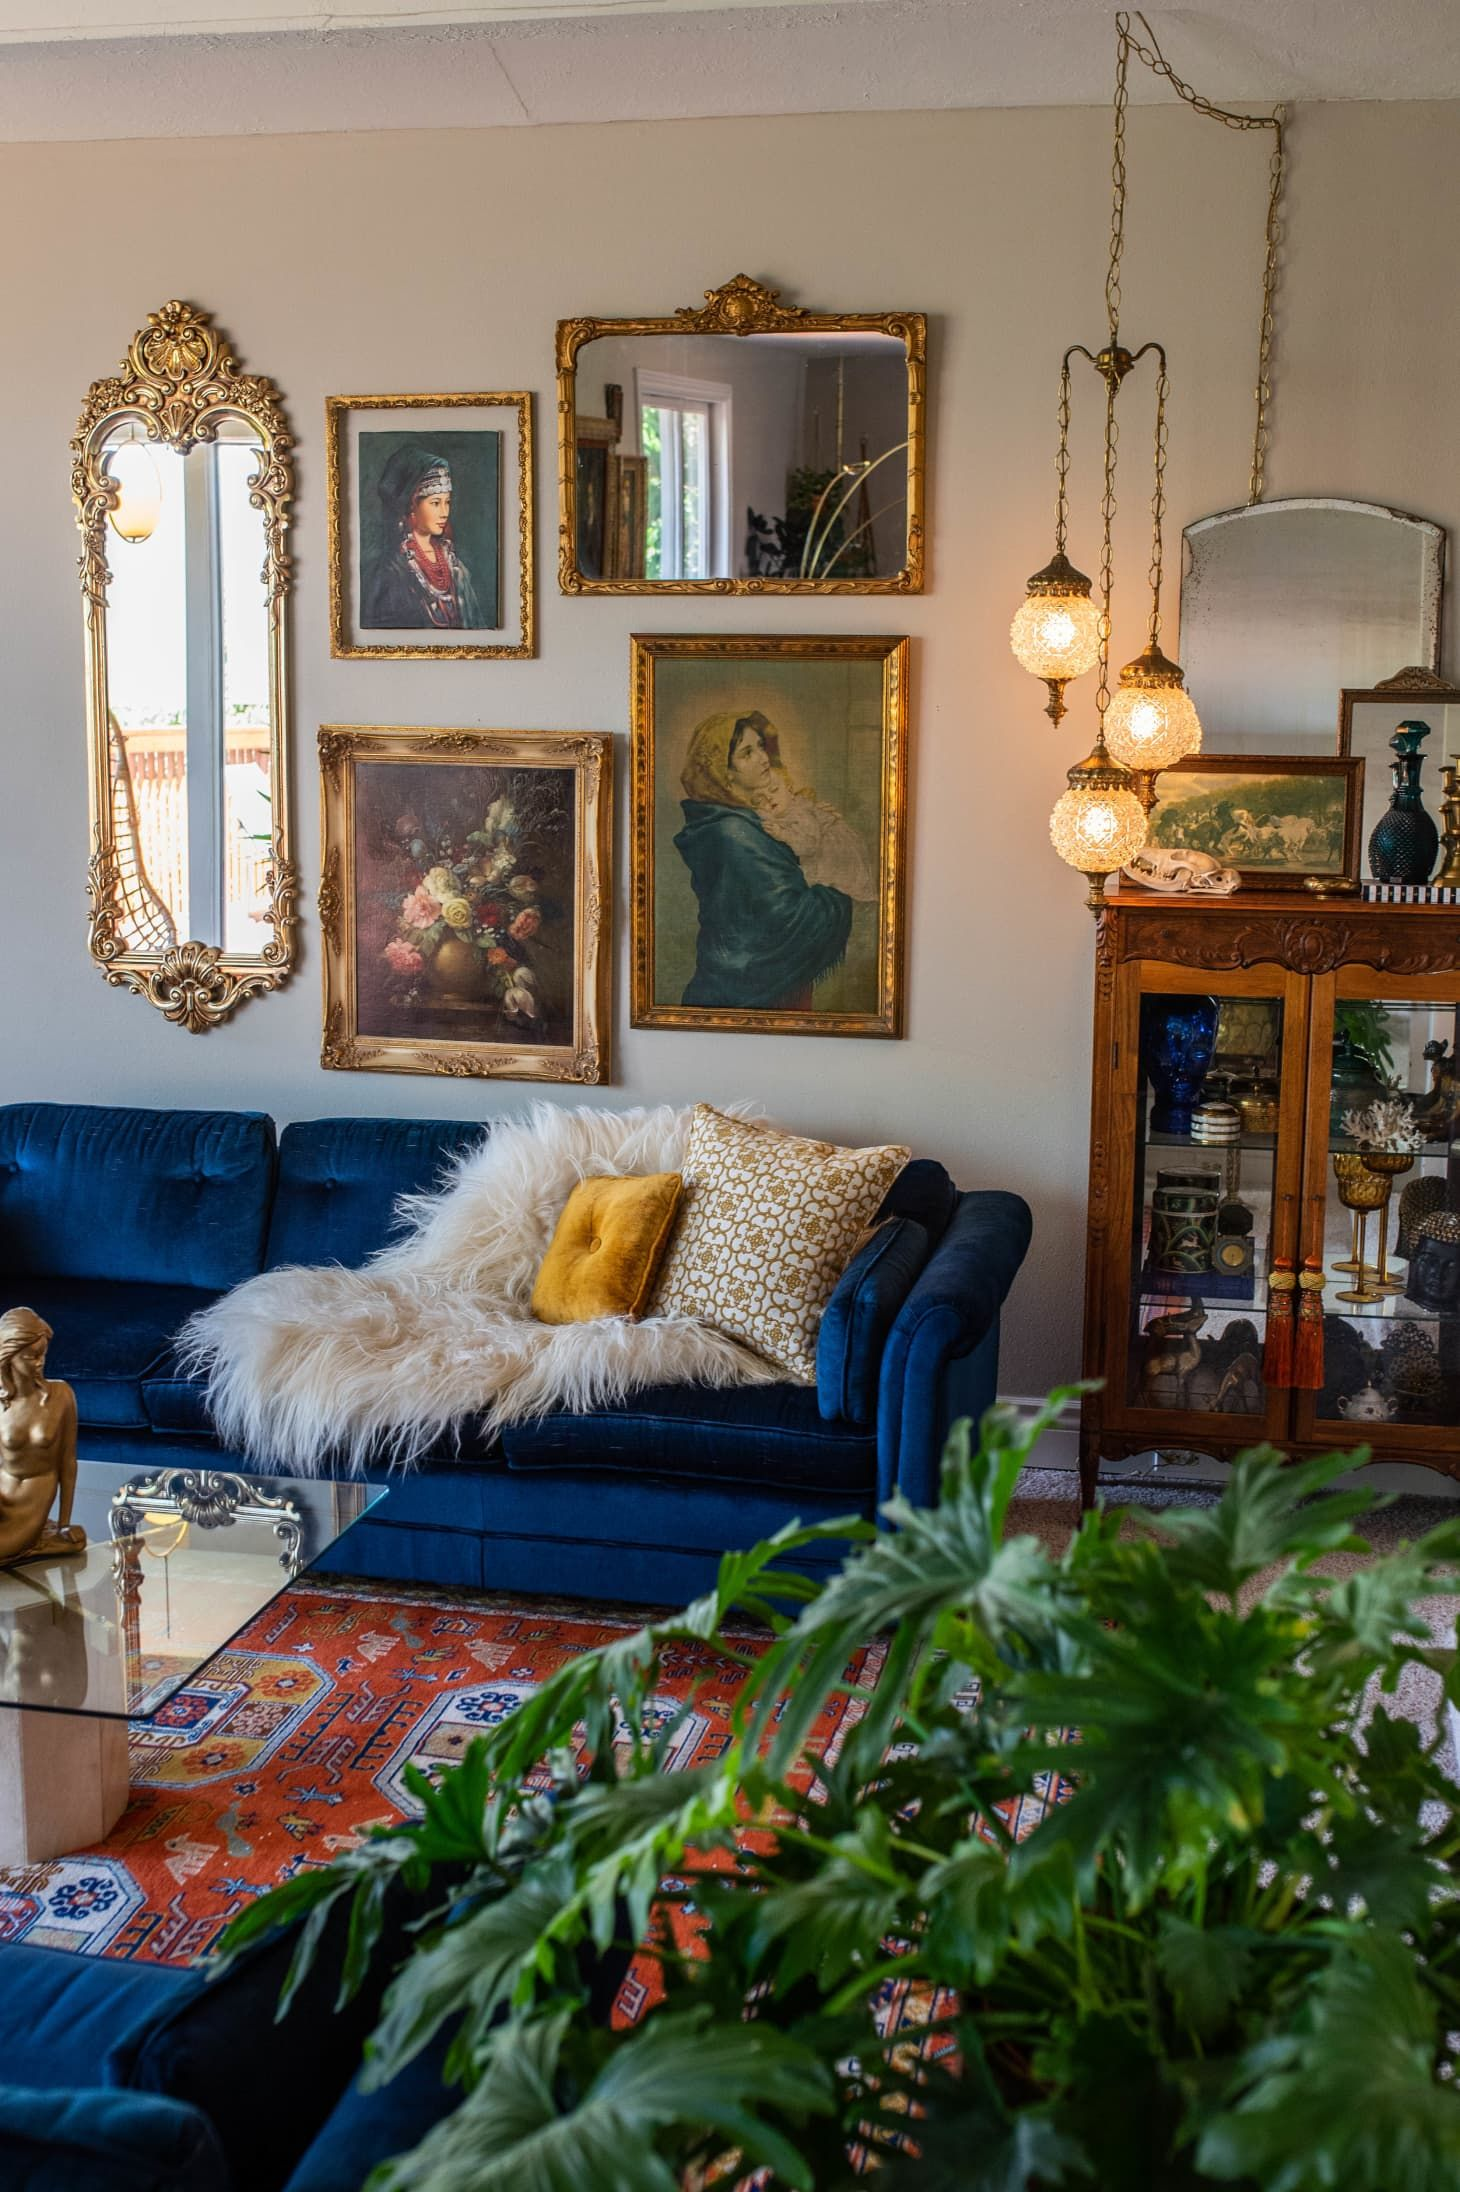 You can choose to design you living room with lots of aesthetics. The way you decorate using classic blue, will give you the key how it's gonna look at the end.